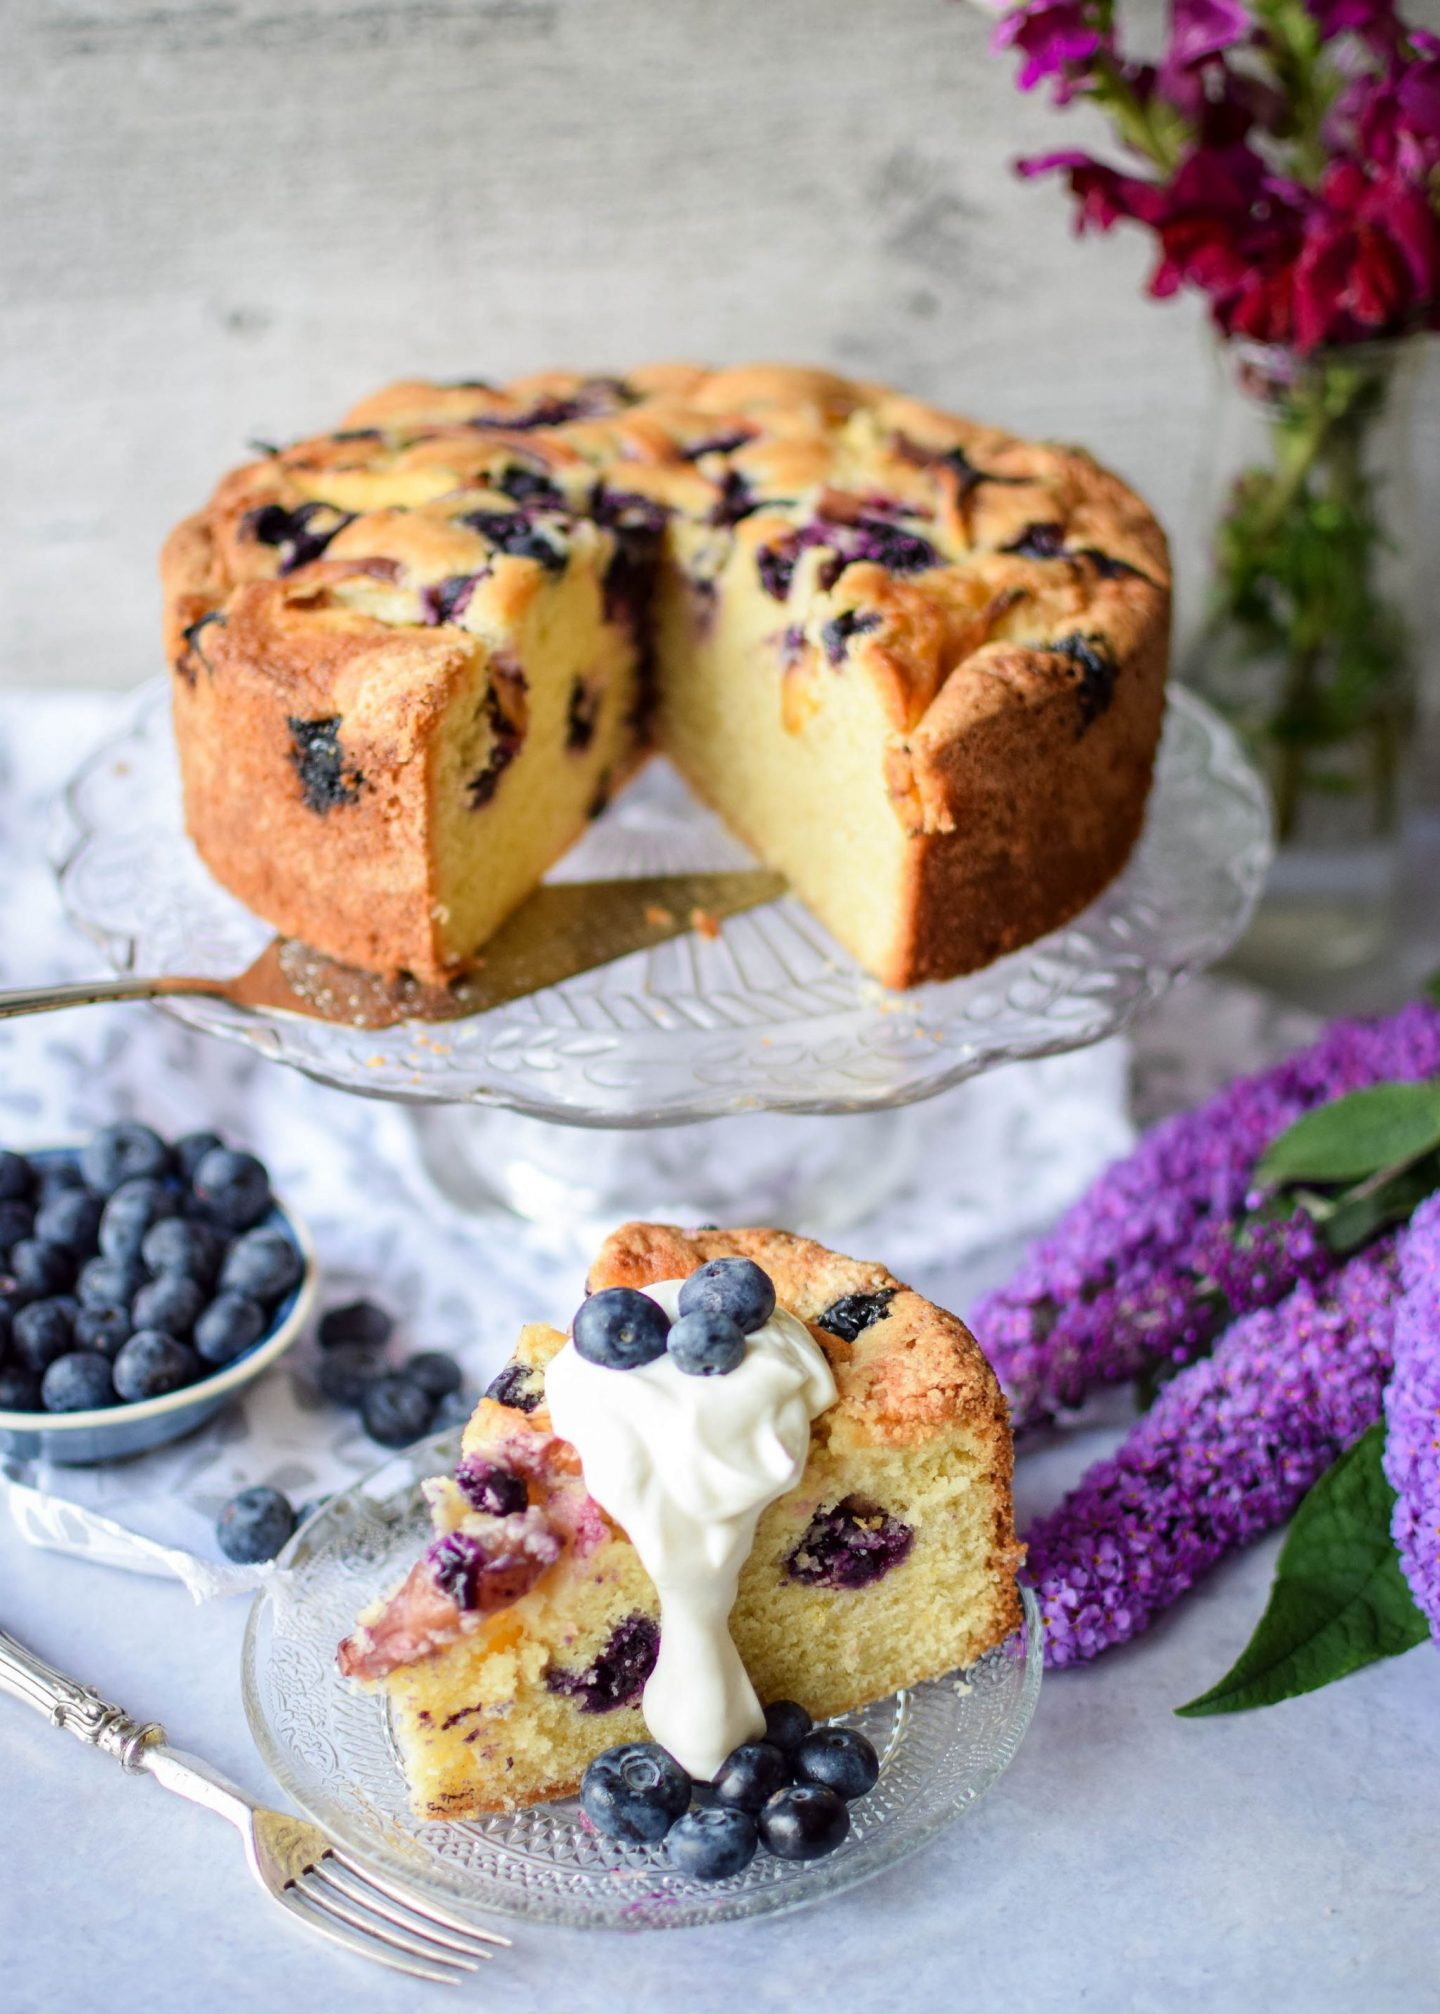 Blueberry and nectarine cake